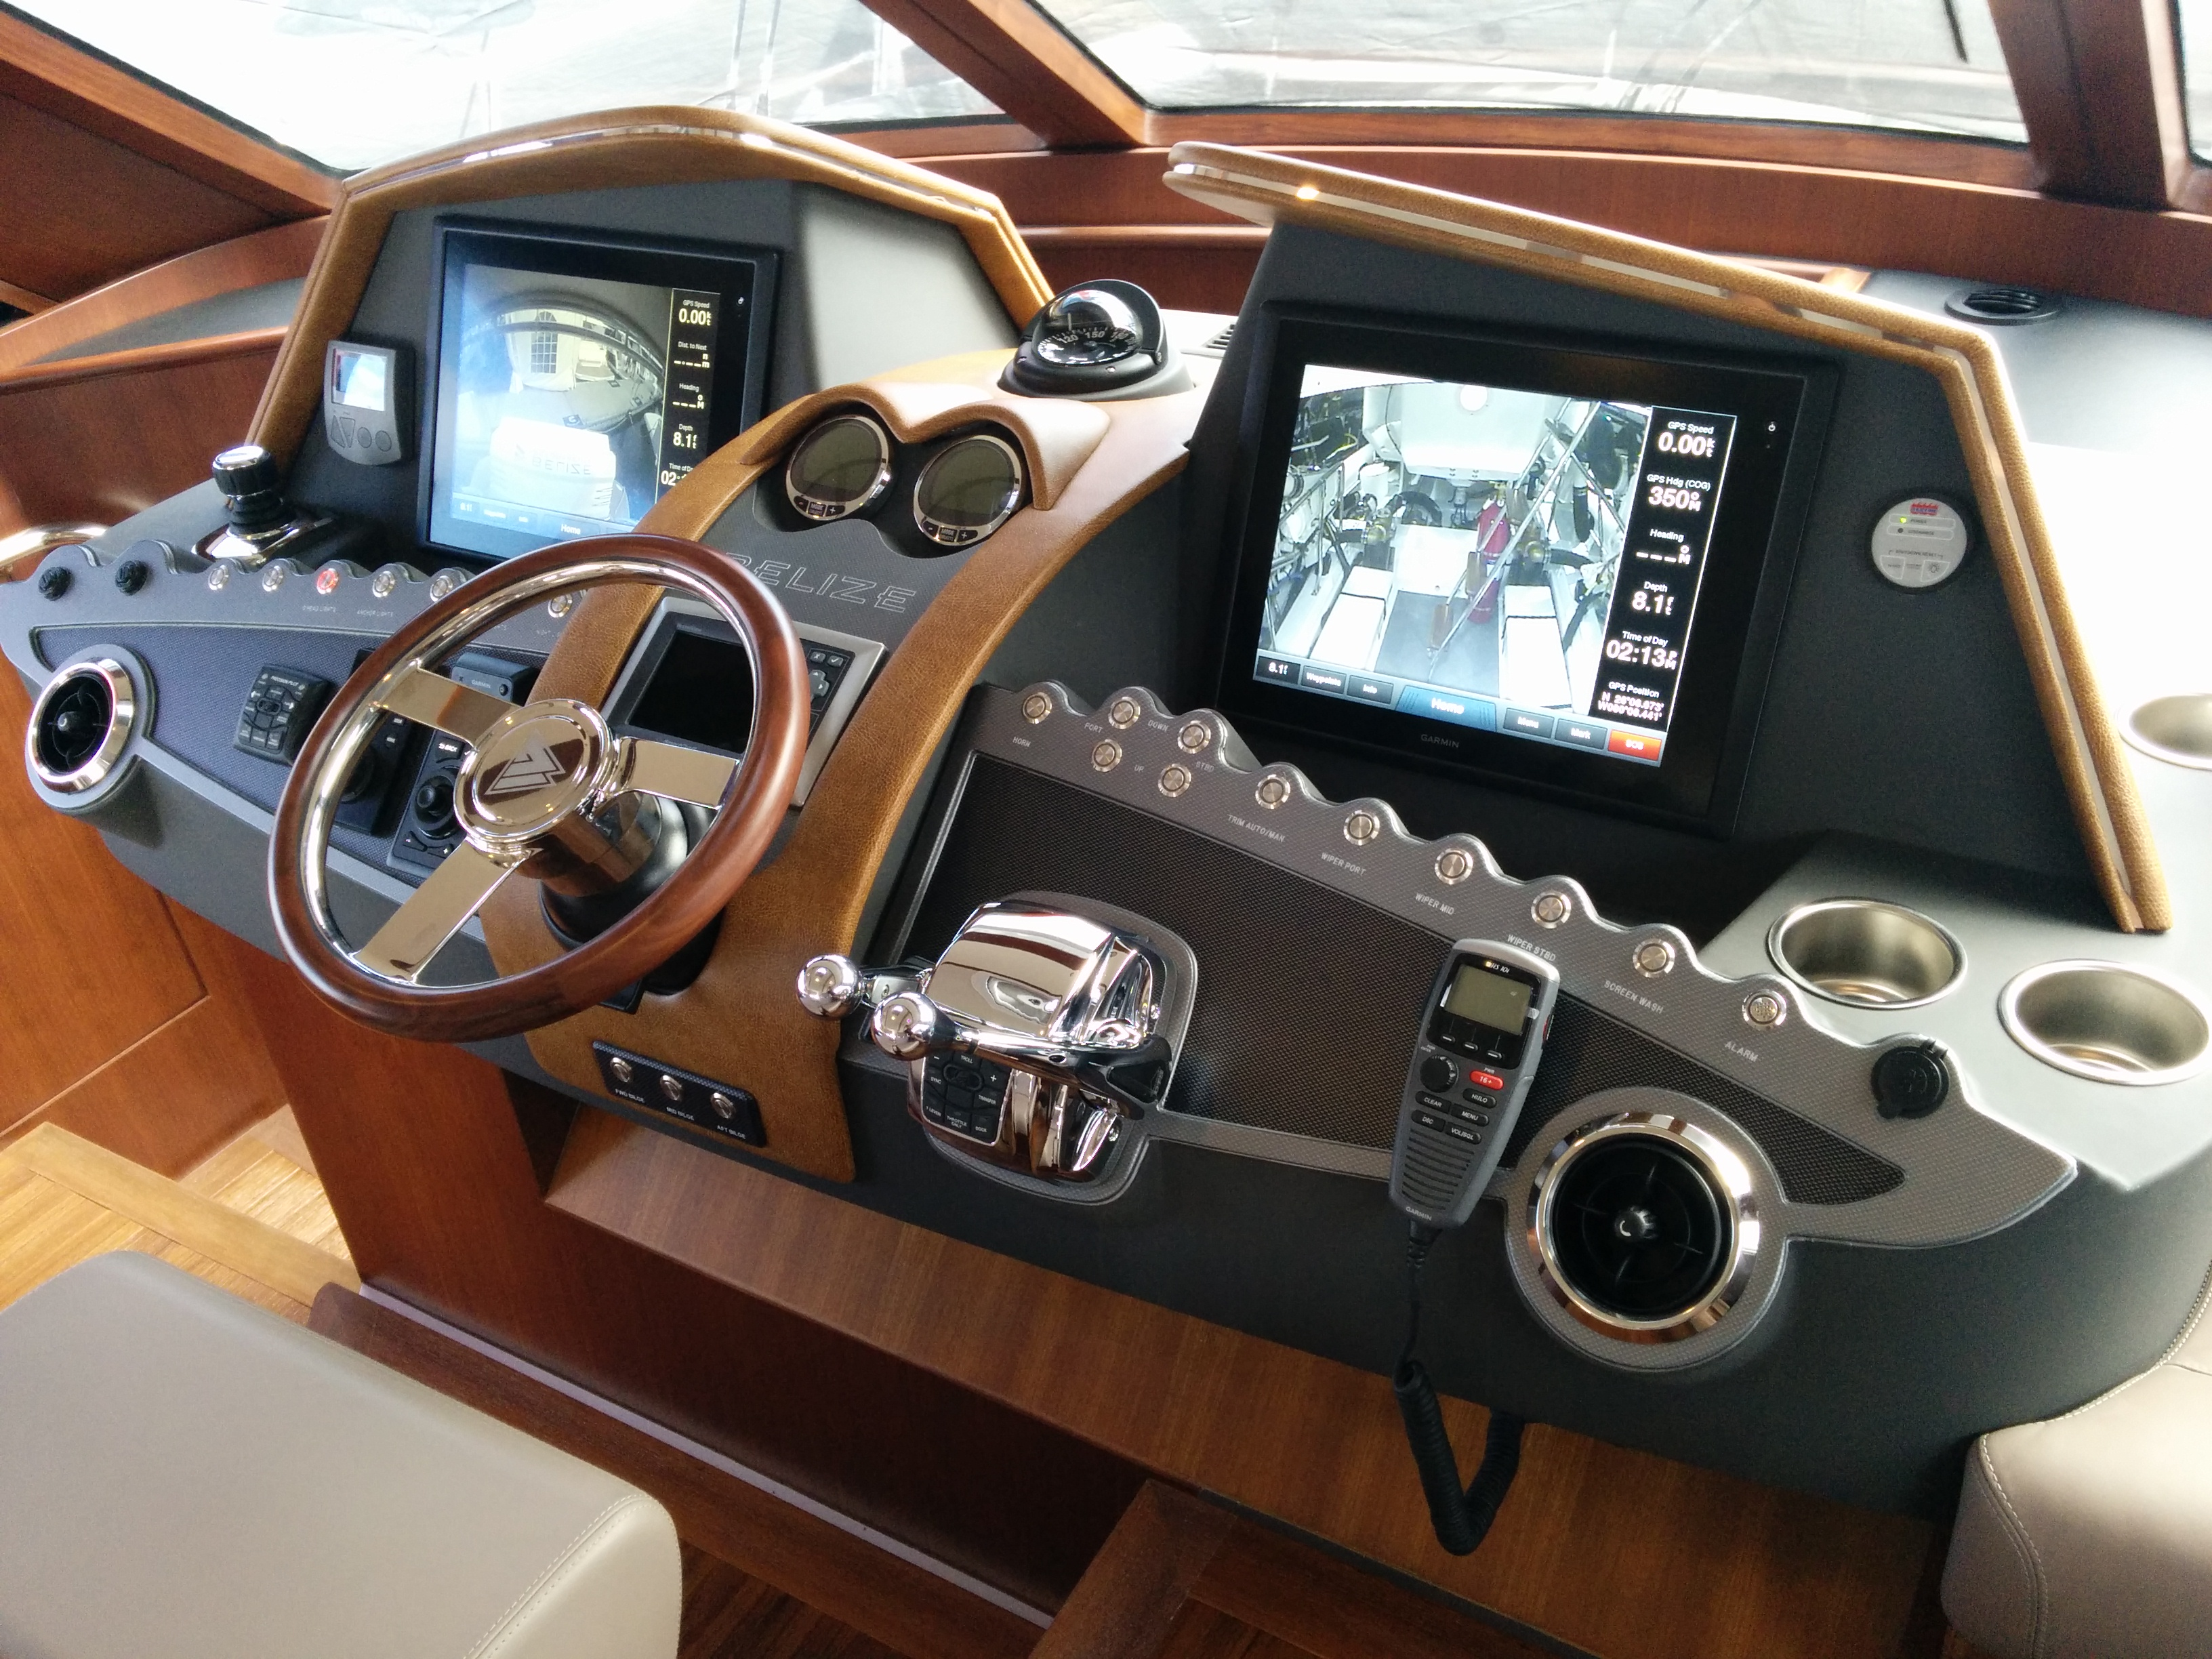 RIVIERA BOAT DASH PANEL